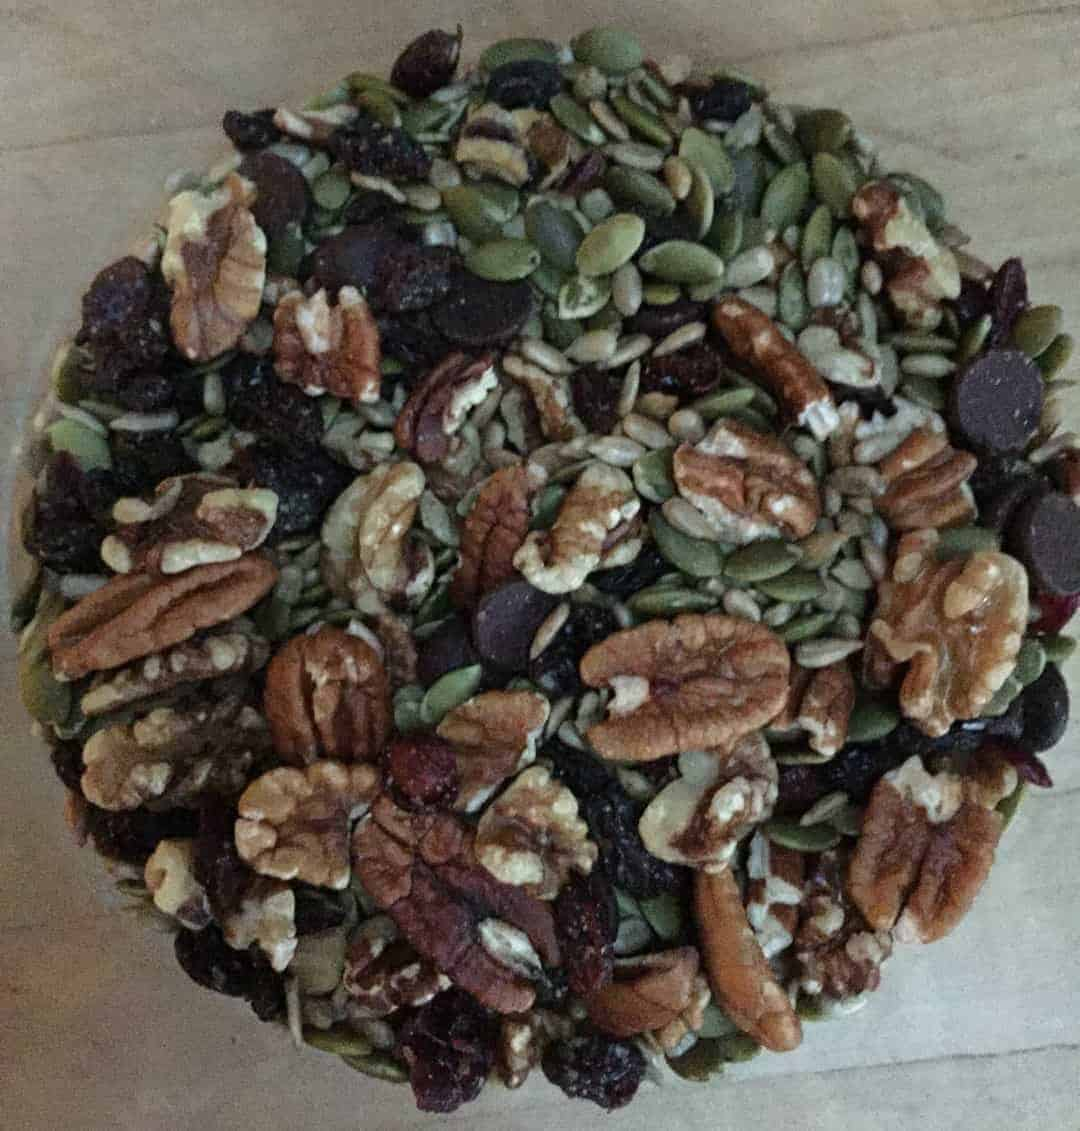 Homemade Trail Mix with nuts and seeds